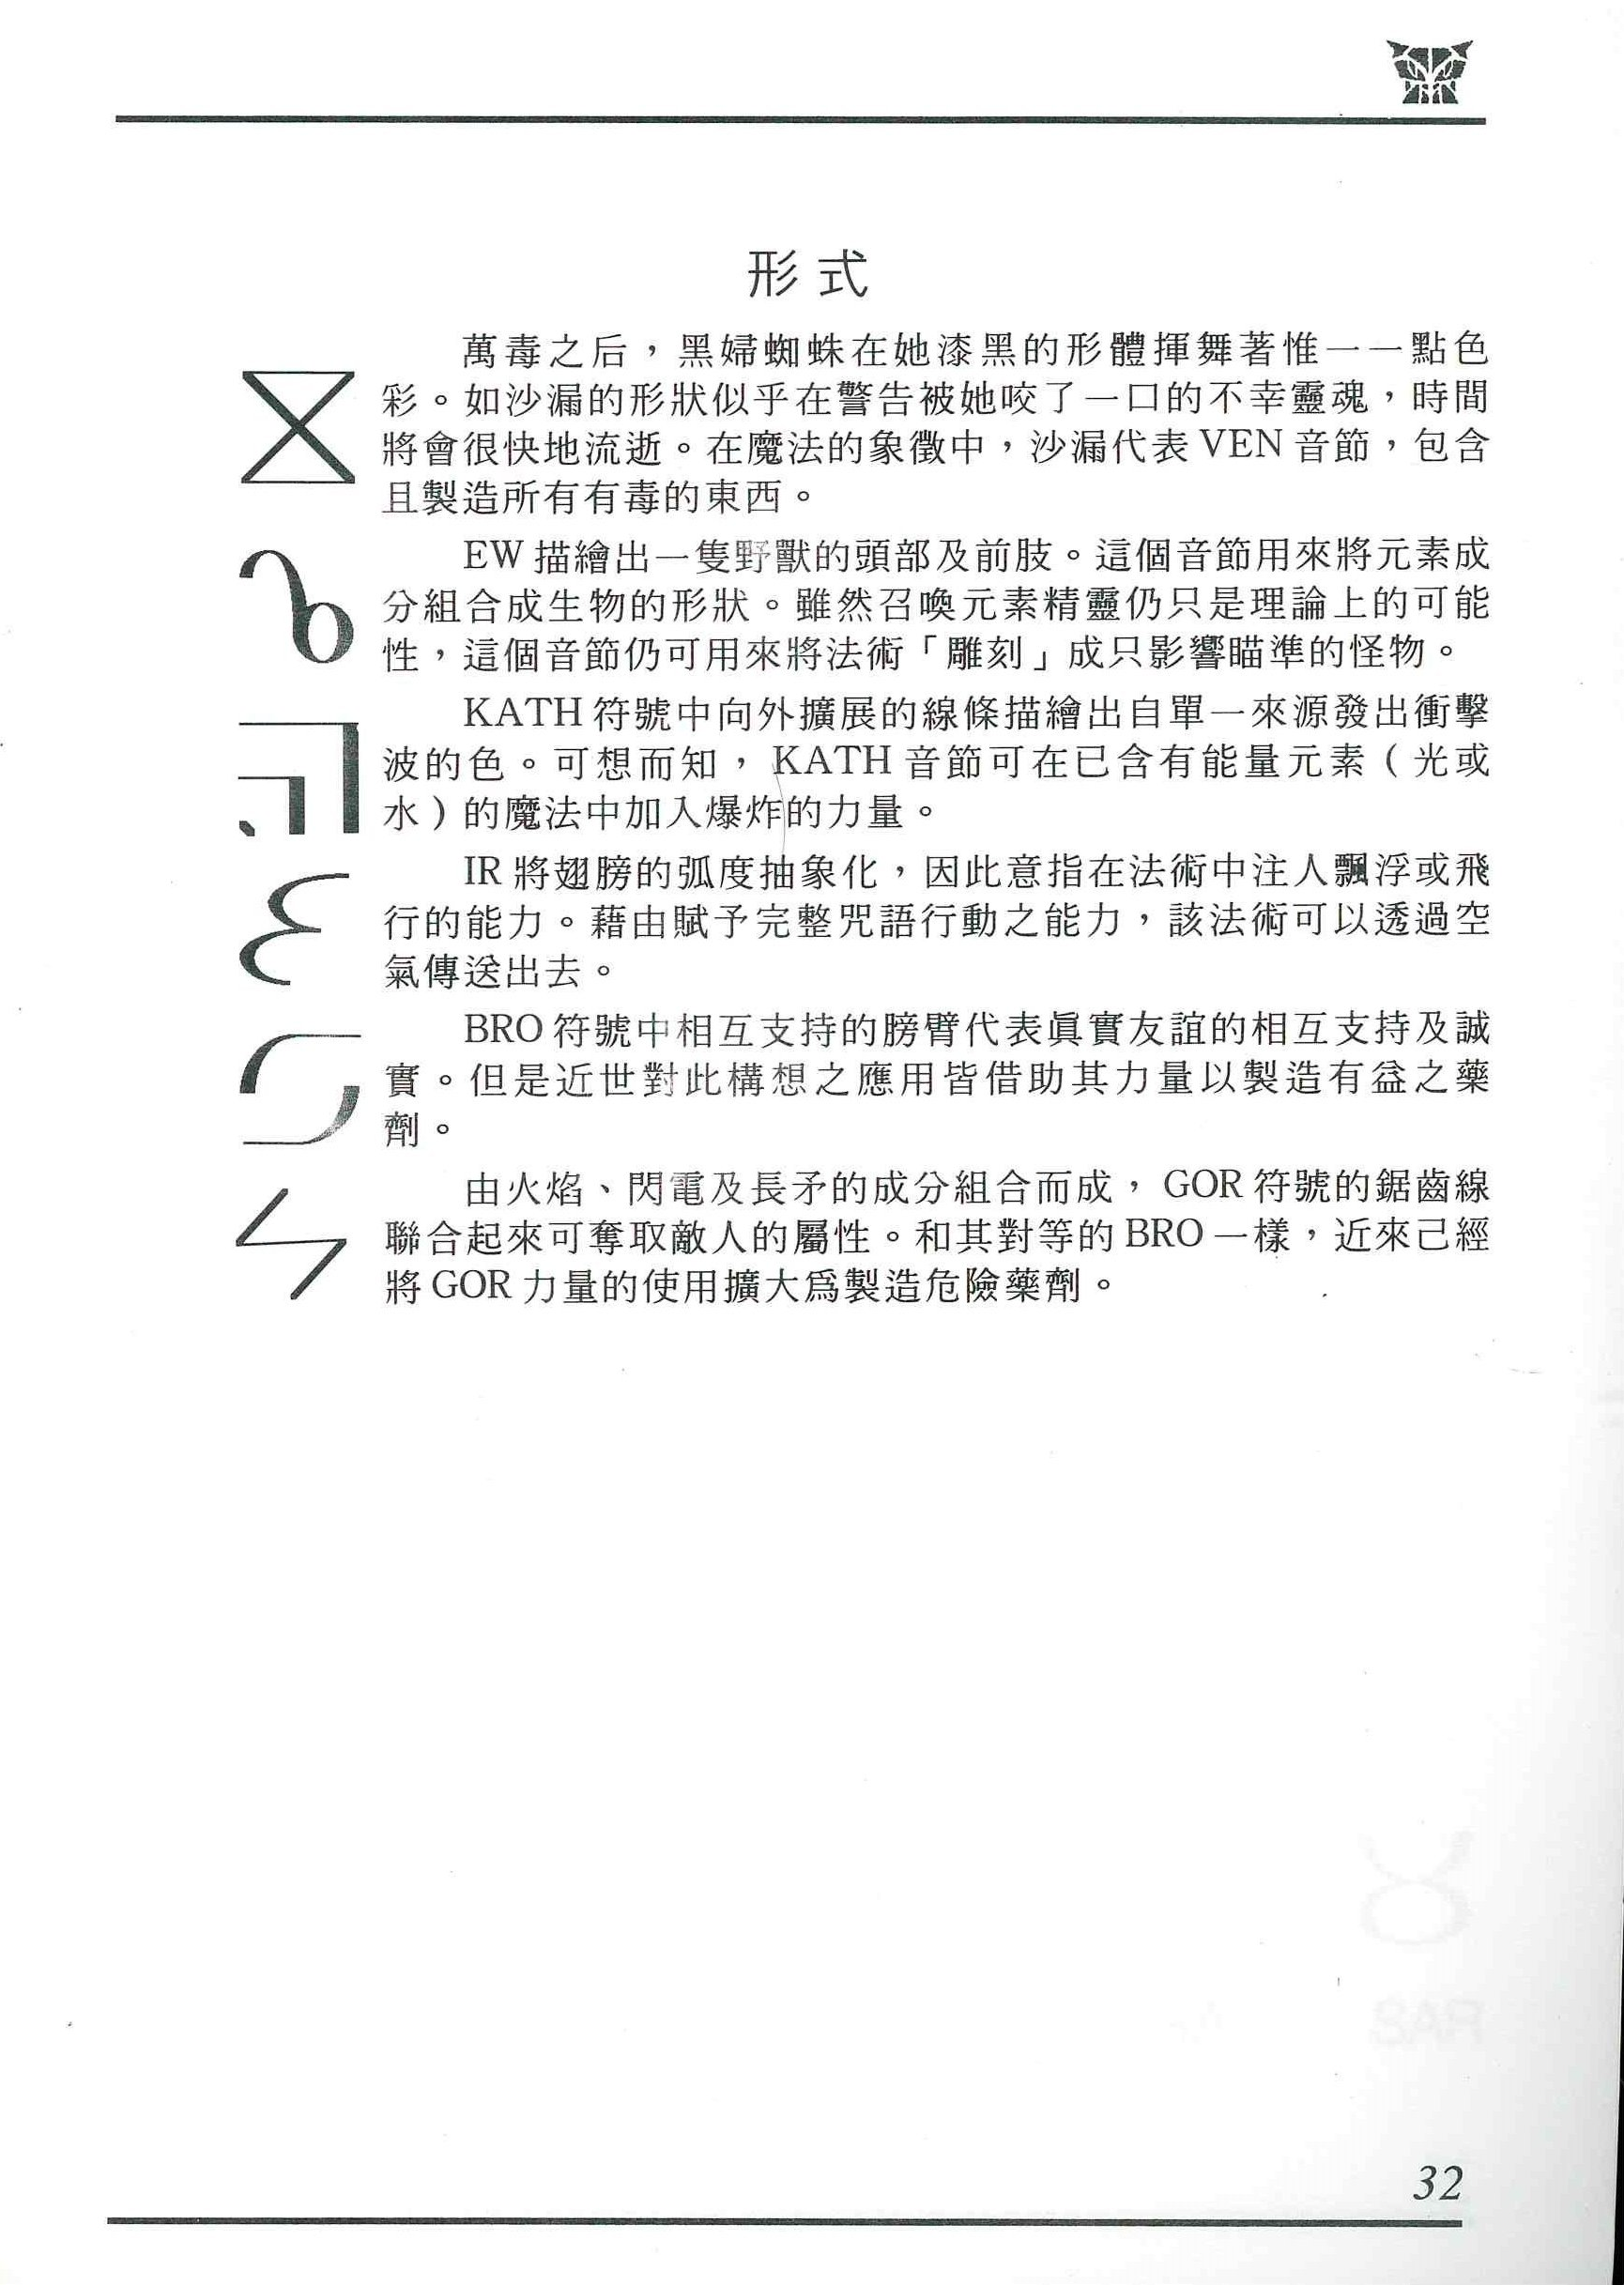 Game - Dungeon Master - CN - PC - Manual - Page 039 - Scan